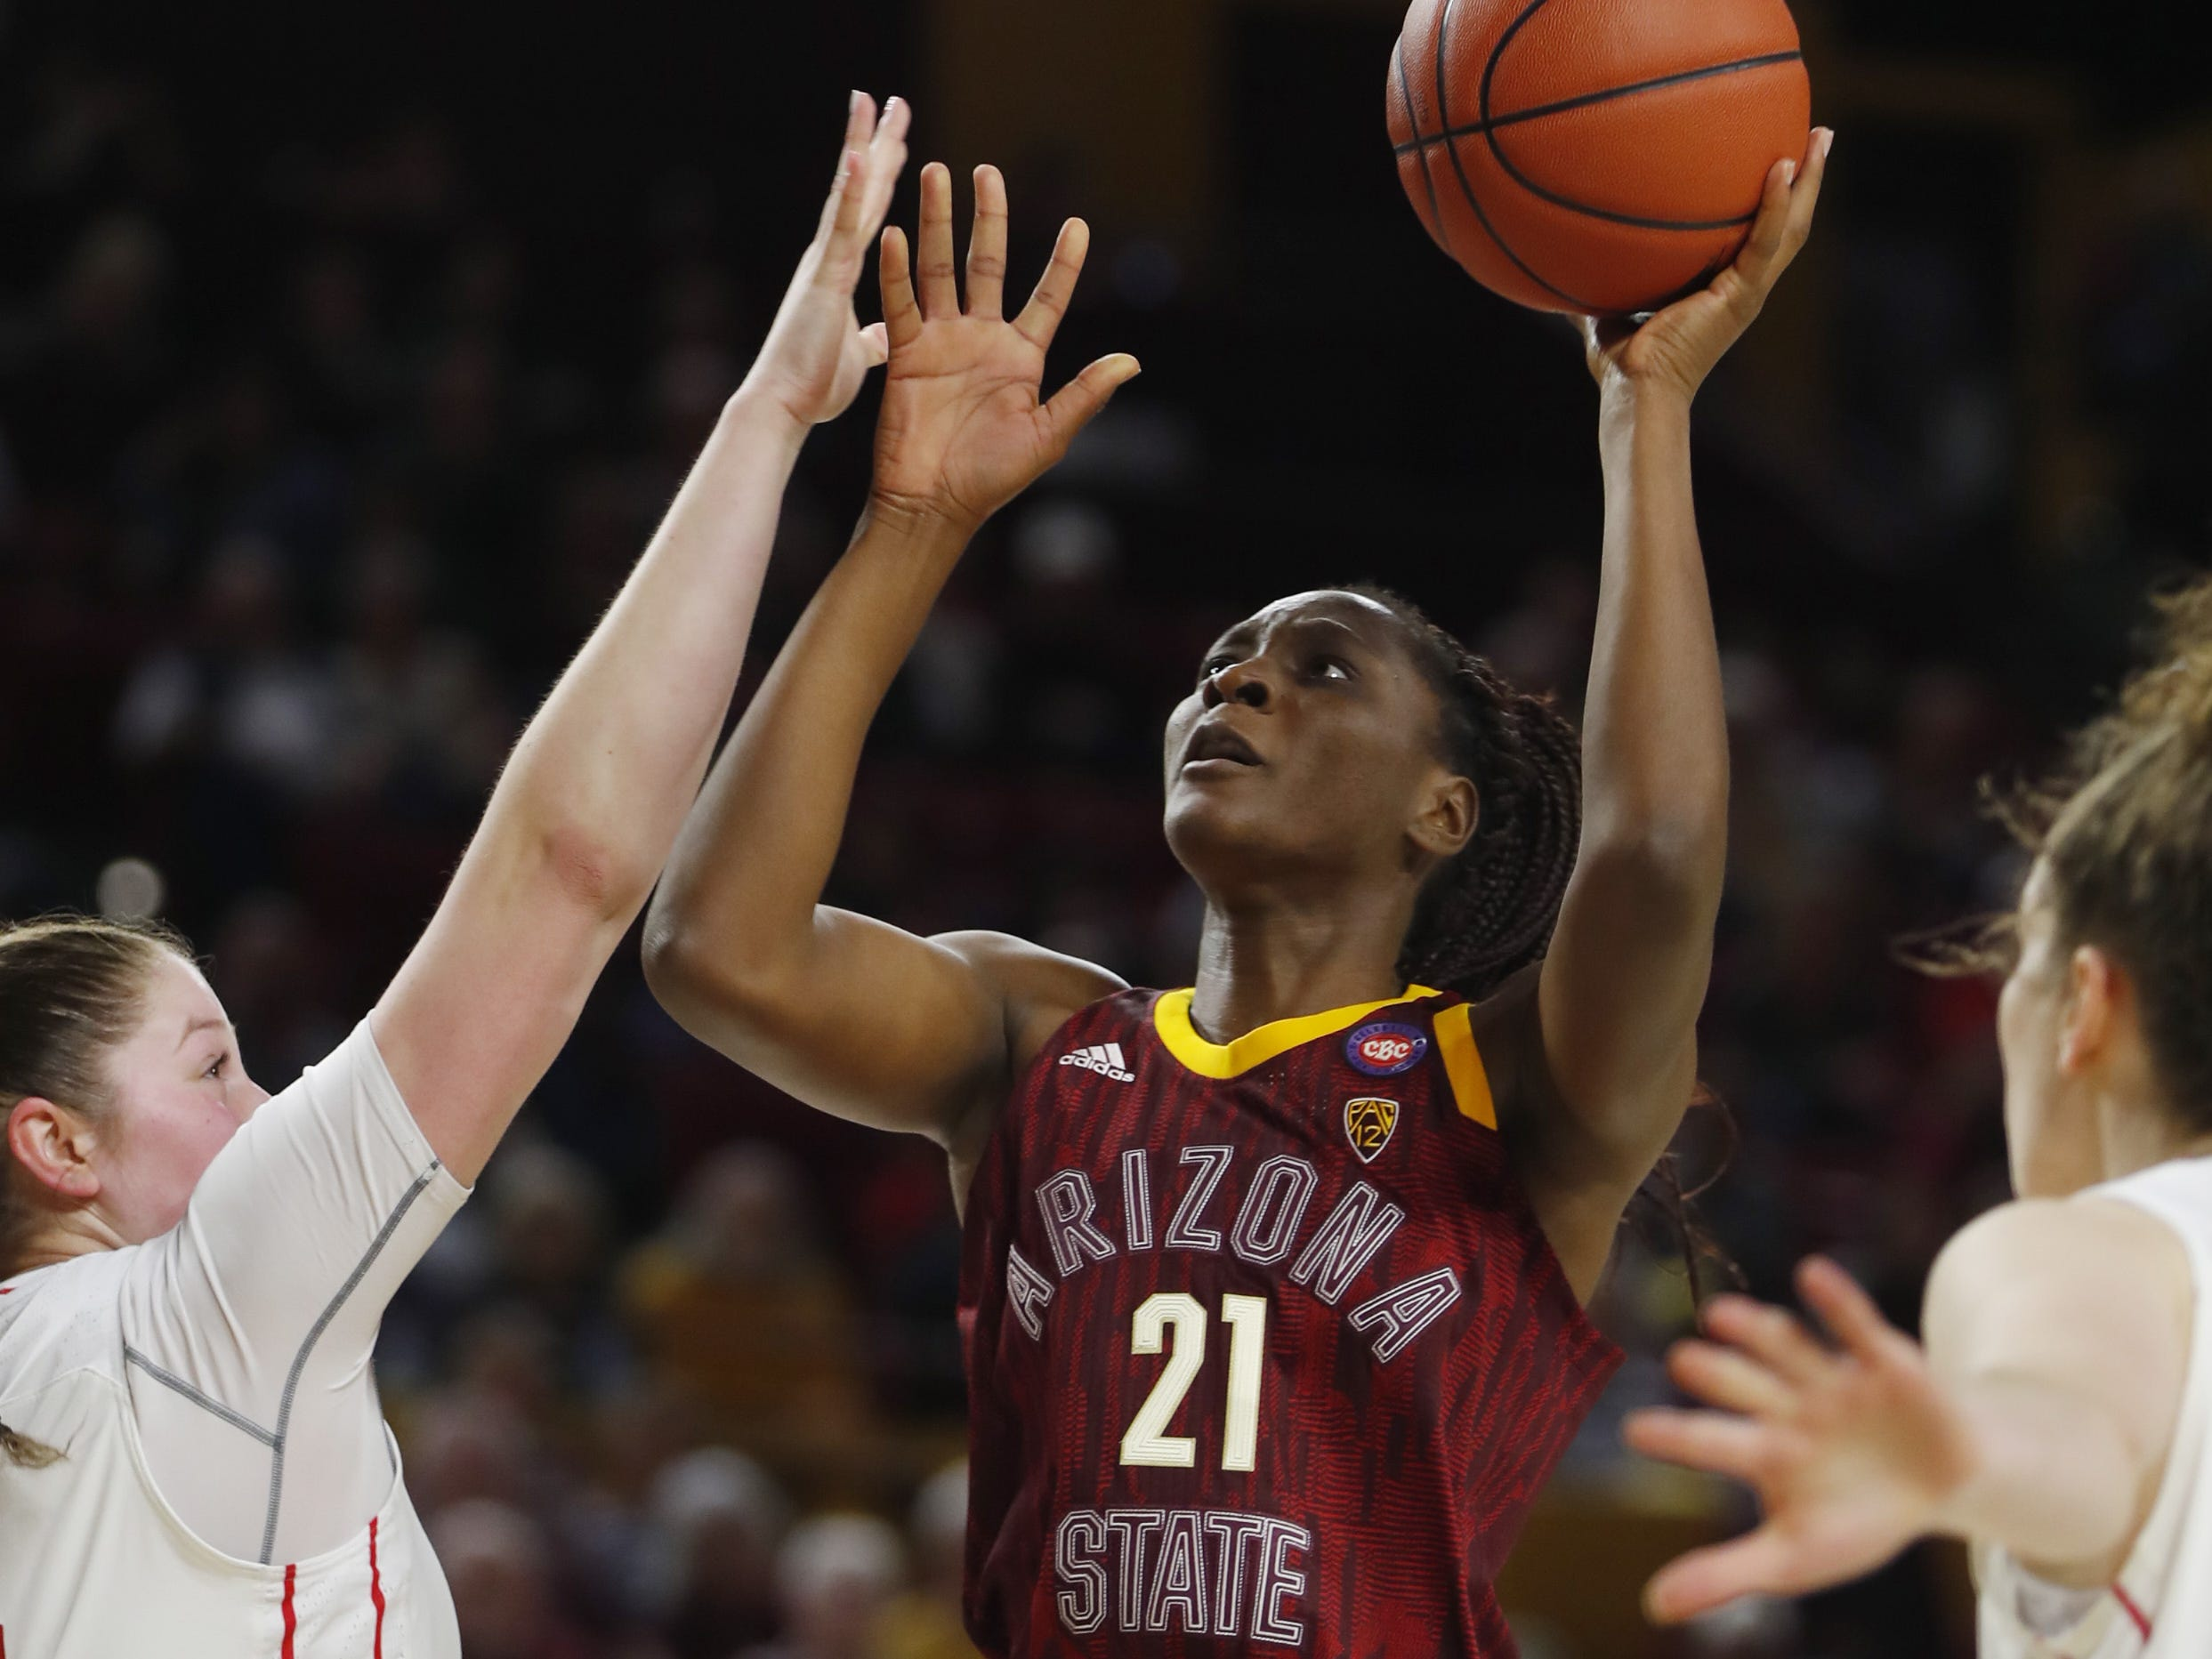 ASU's Sophia Elenga (21) shoots against Utah's Andrea Torres (14) during the second half at Wells Fargo Arena in Tempe, Ariz. on February 17, 2019.